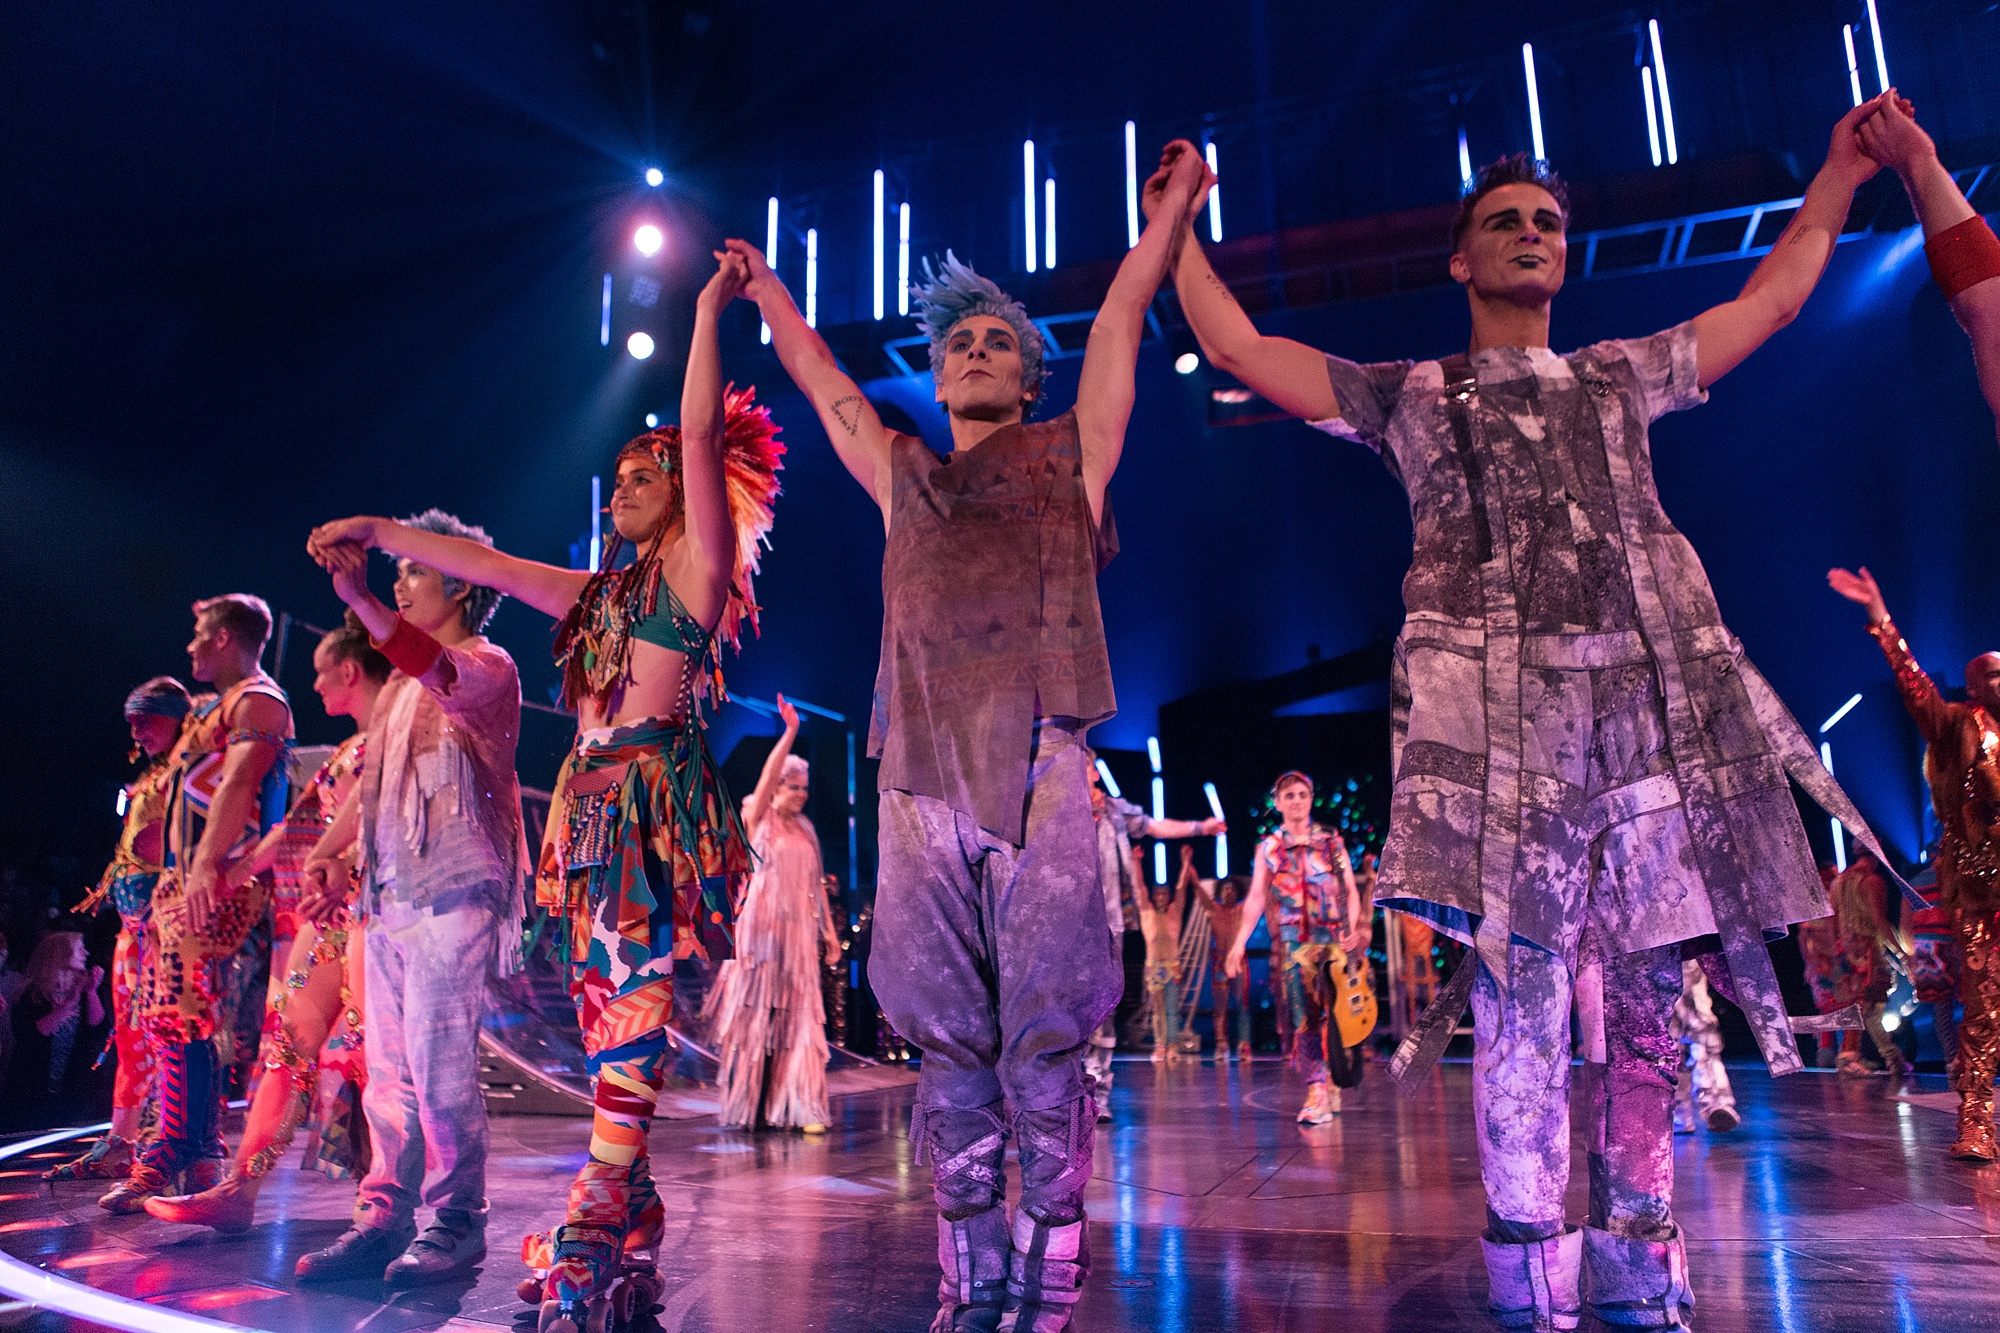 Joe_Mac_Creative_cirque_du_soleil_volta_Greater Philadelphia_Expo_Center_Oaks_PA_Visit_Valley _Forge_0035.jpg